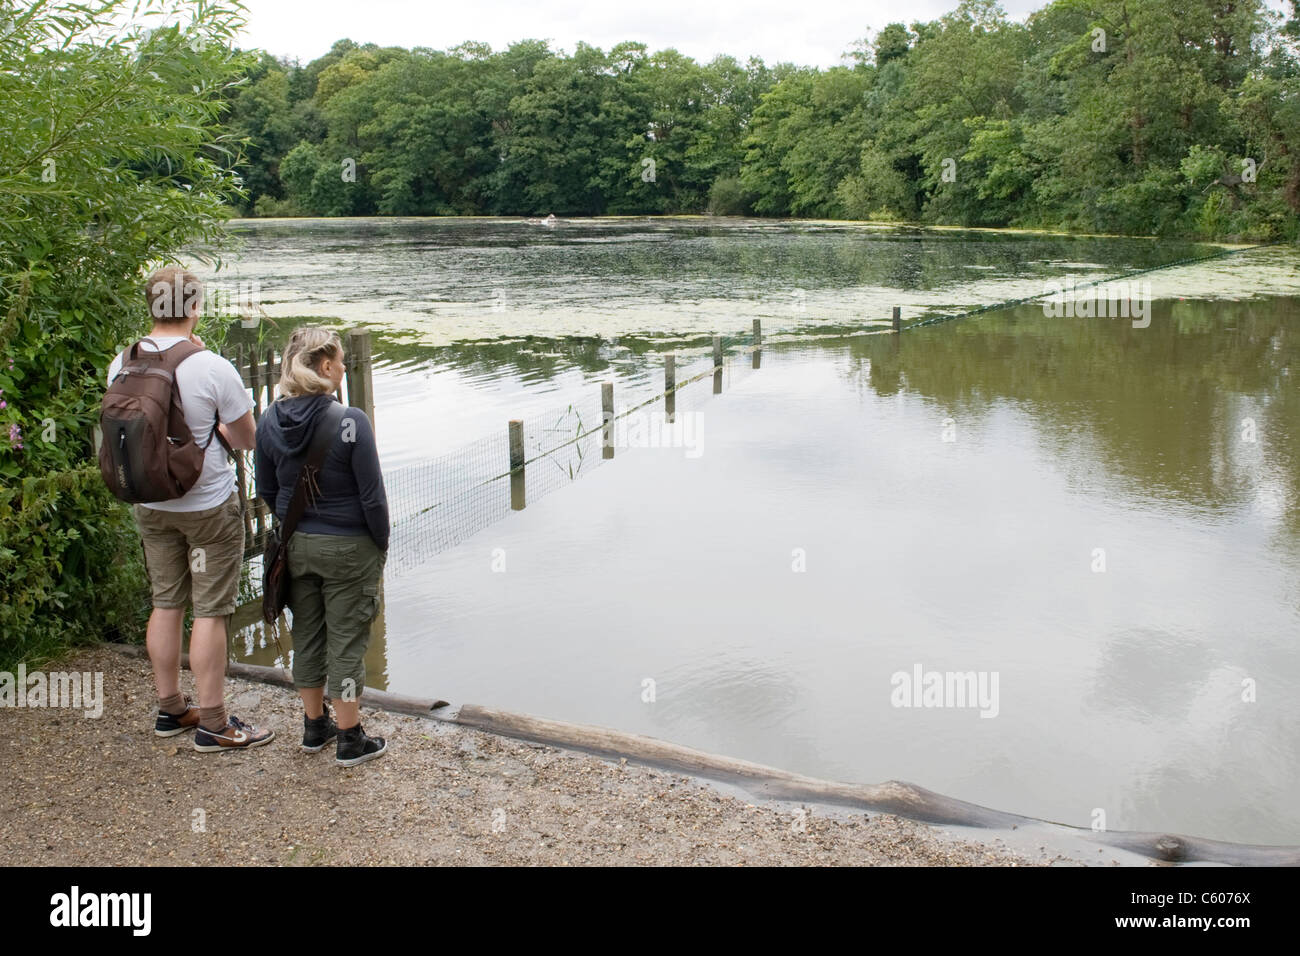 London Parliament Hill Hampstead Heath Highgate no. 1 pond young couple admire view knapsack shorts cut offs lake - Stock Image